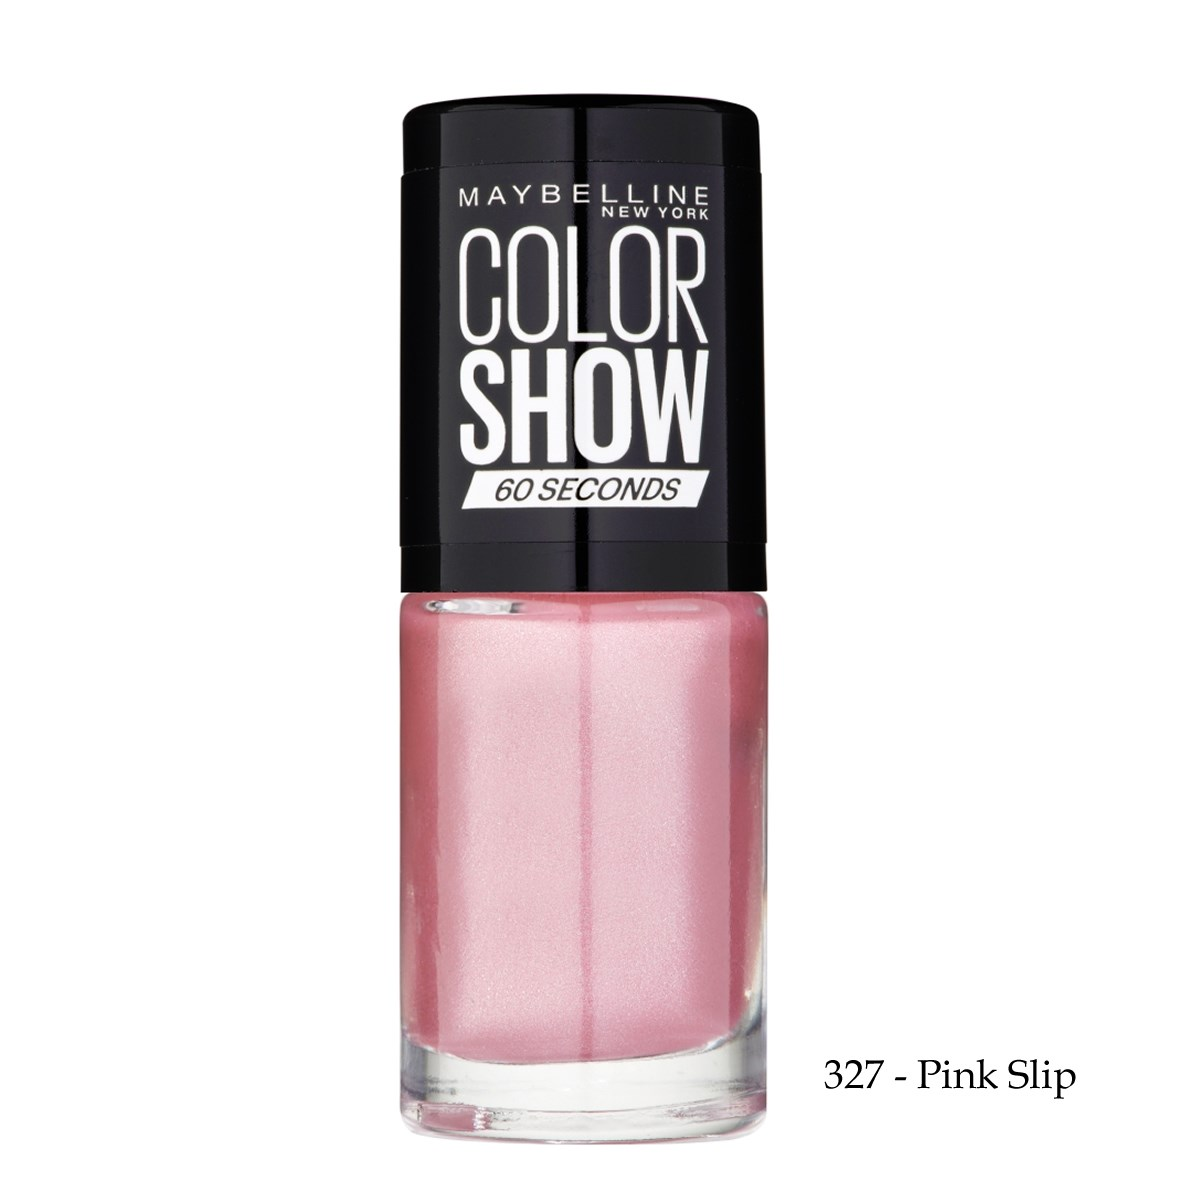 Maybelline Color Show Nail Color